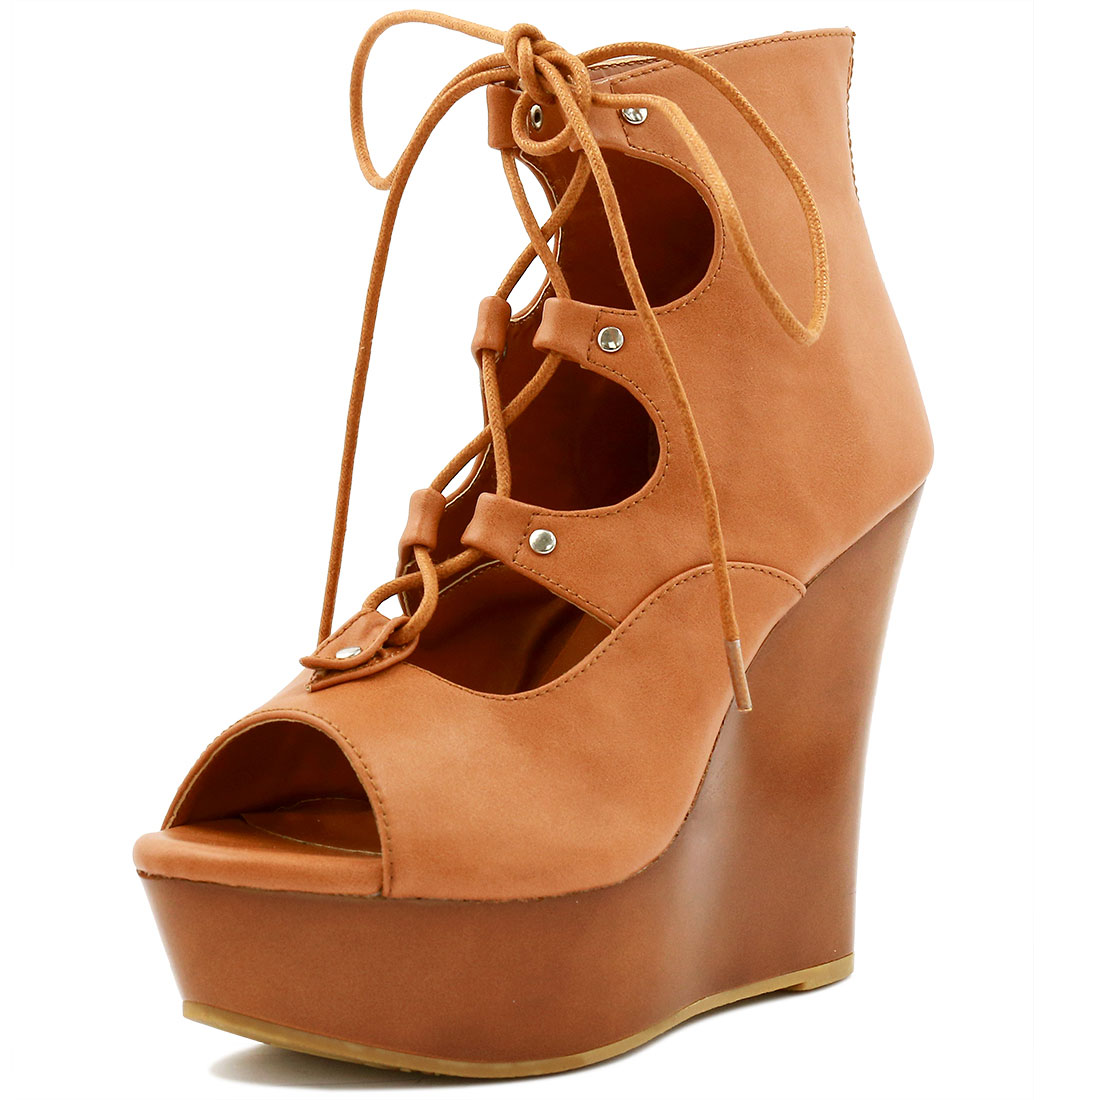 Woman Peep Toe Lace-Up Cutout Platform Wedge Sandals Brown US 8